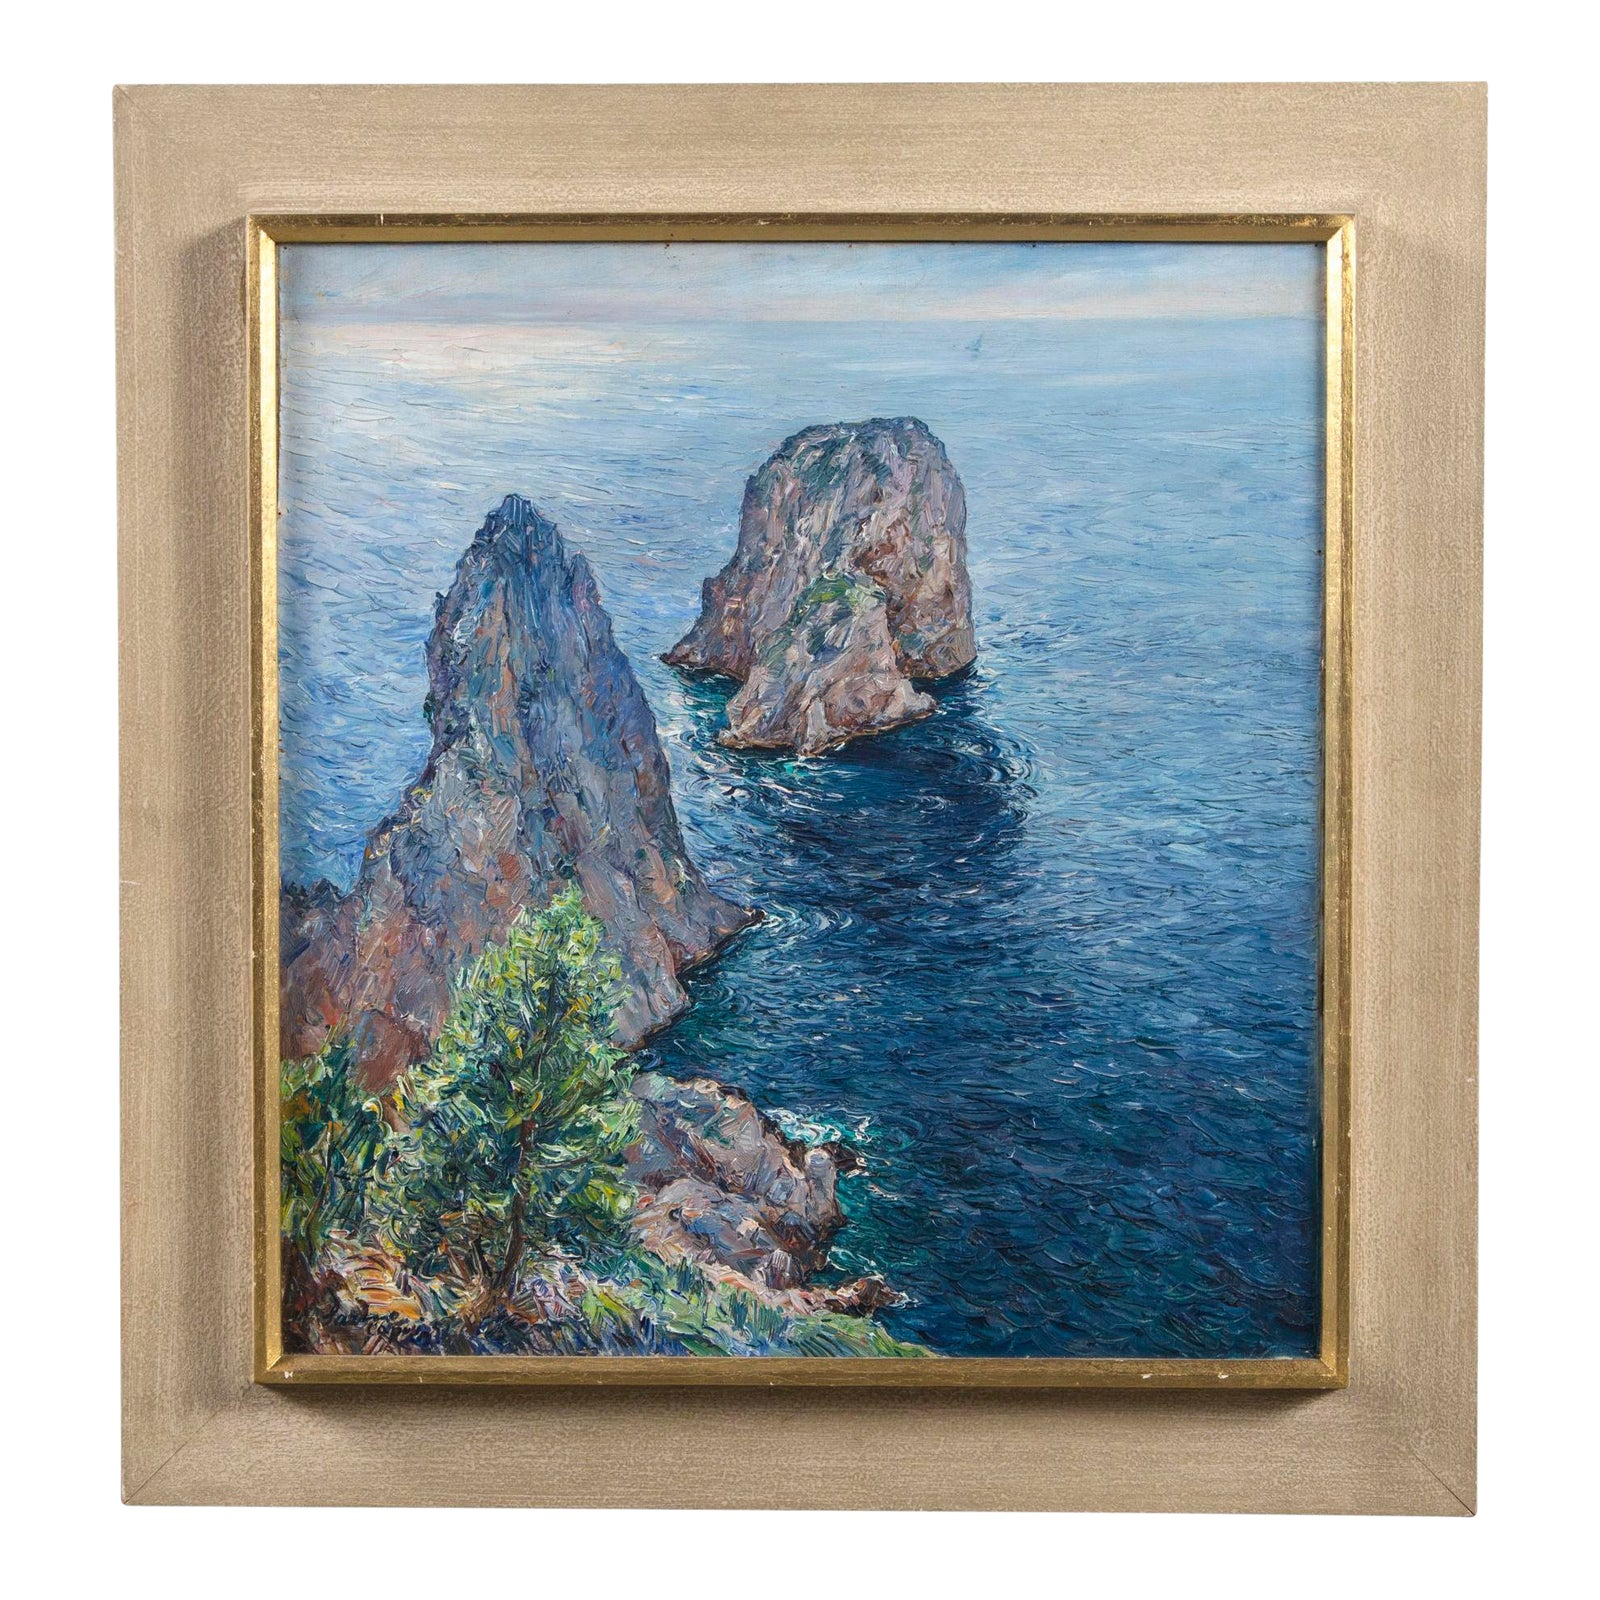 Idea Casa Full Sarno isle of capri oil painting signed matteo sarno